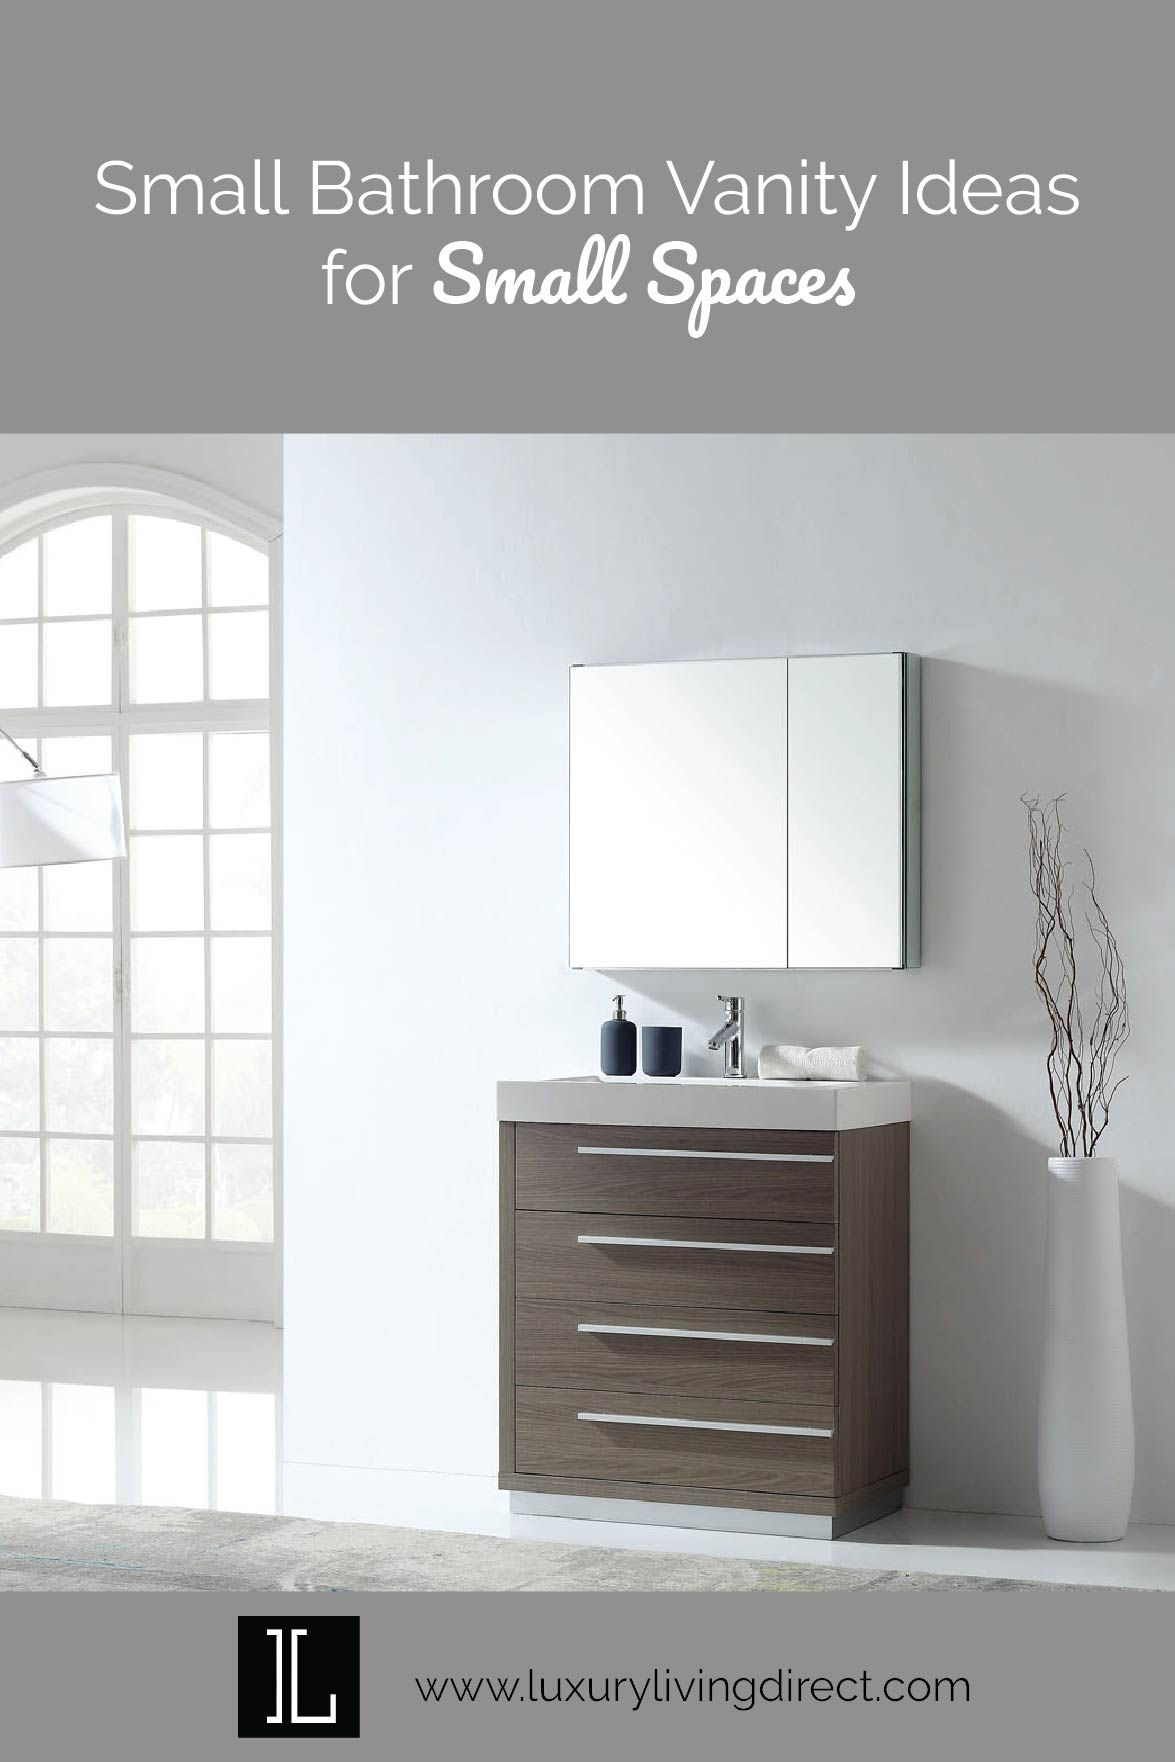 Small Bathroom Vanity Ideas for Small Spaces - Luxury ... on Bathroom Ideas Small Spaces  id=81288